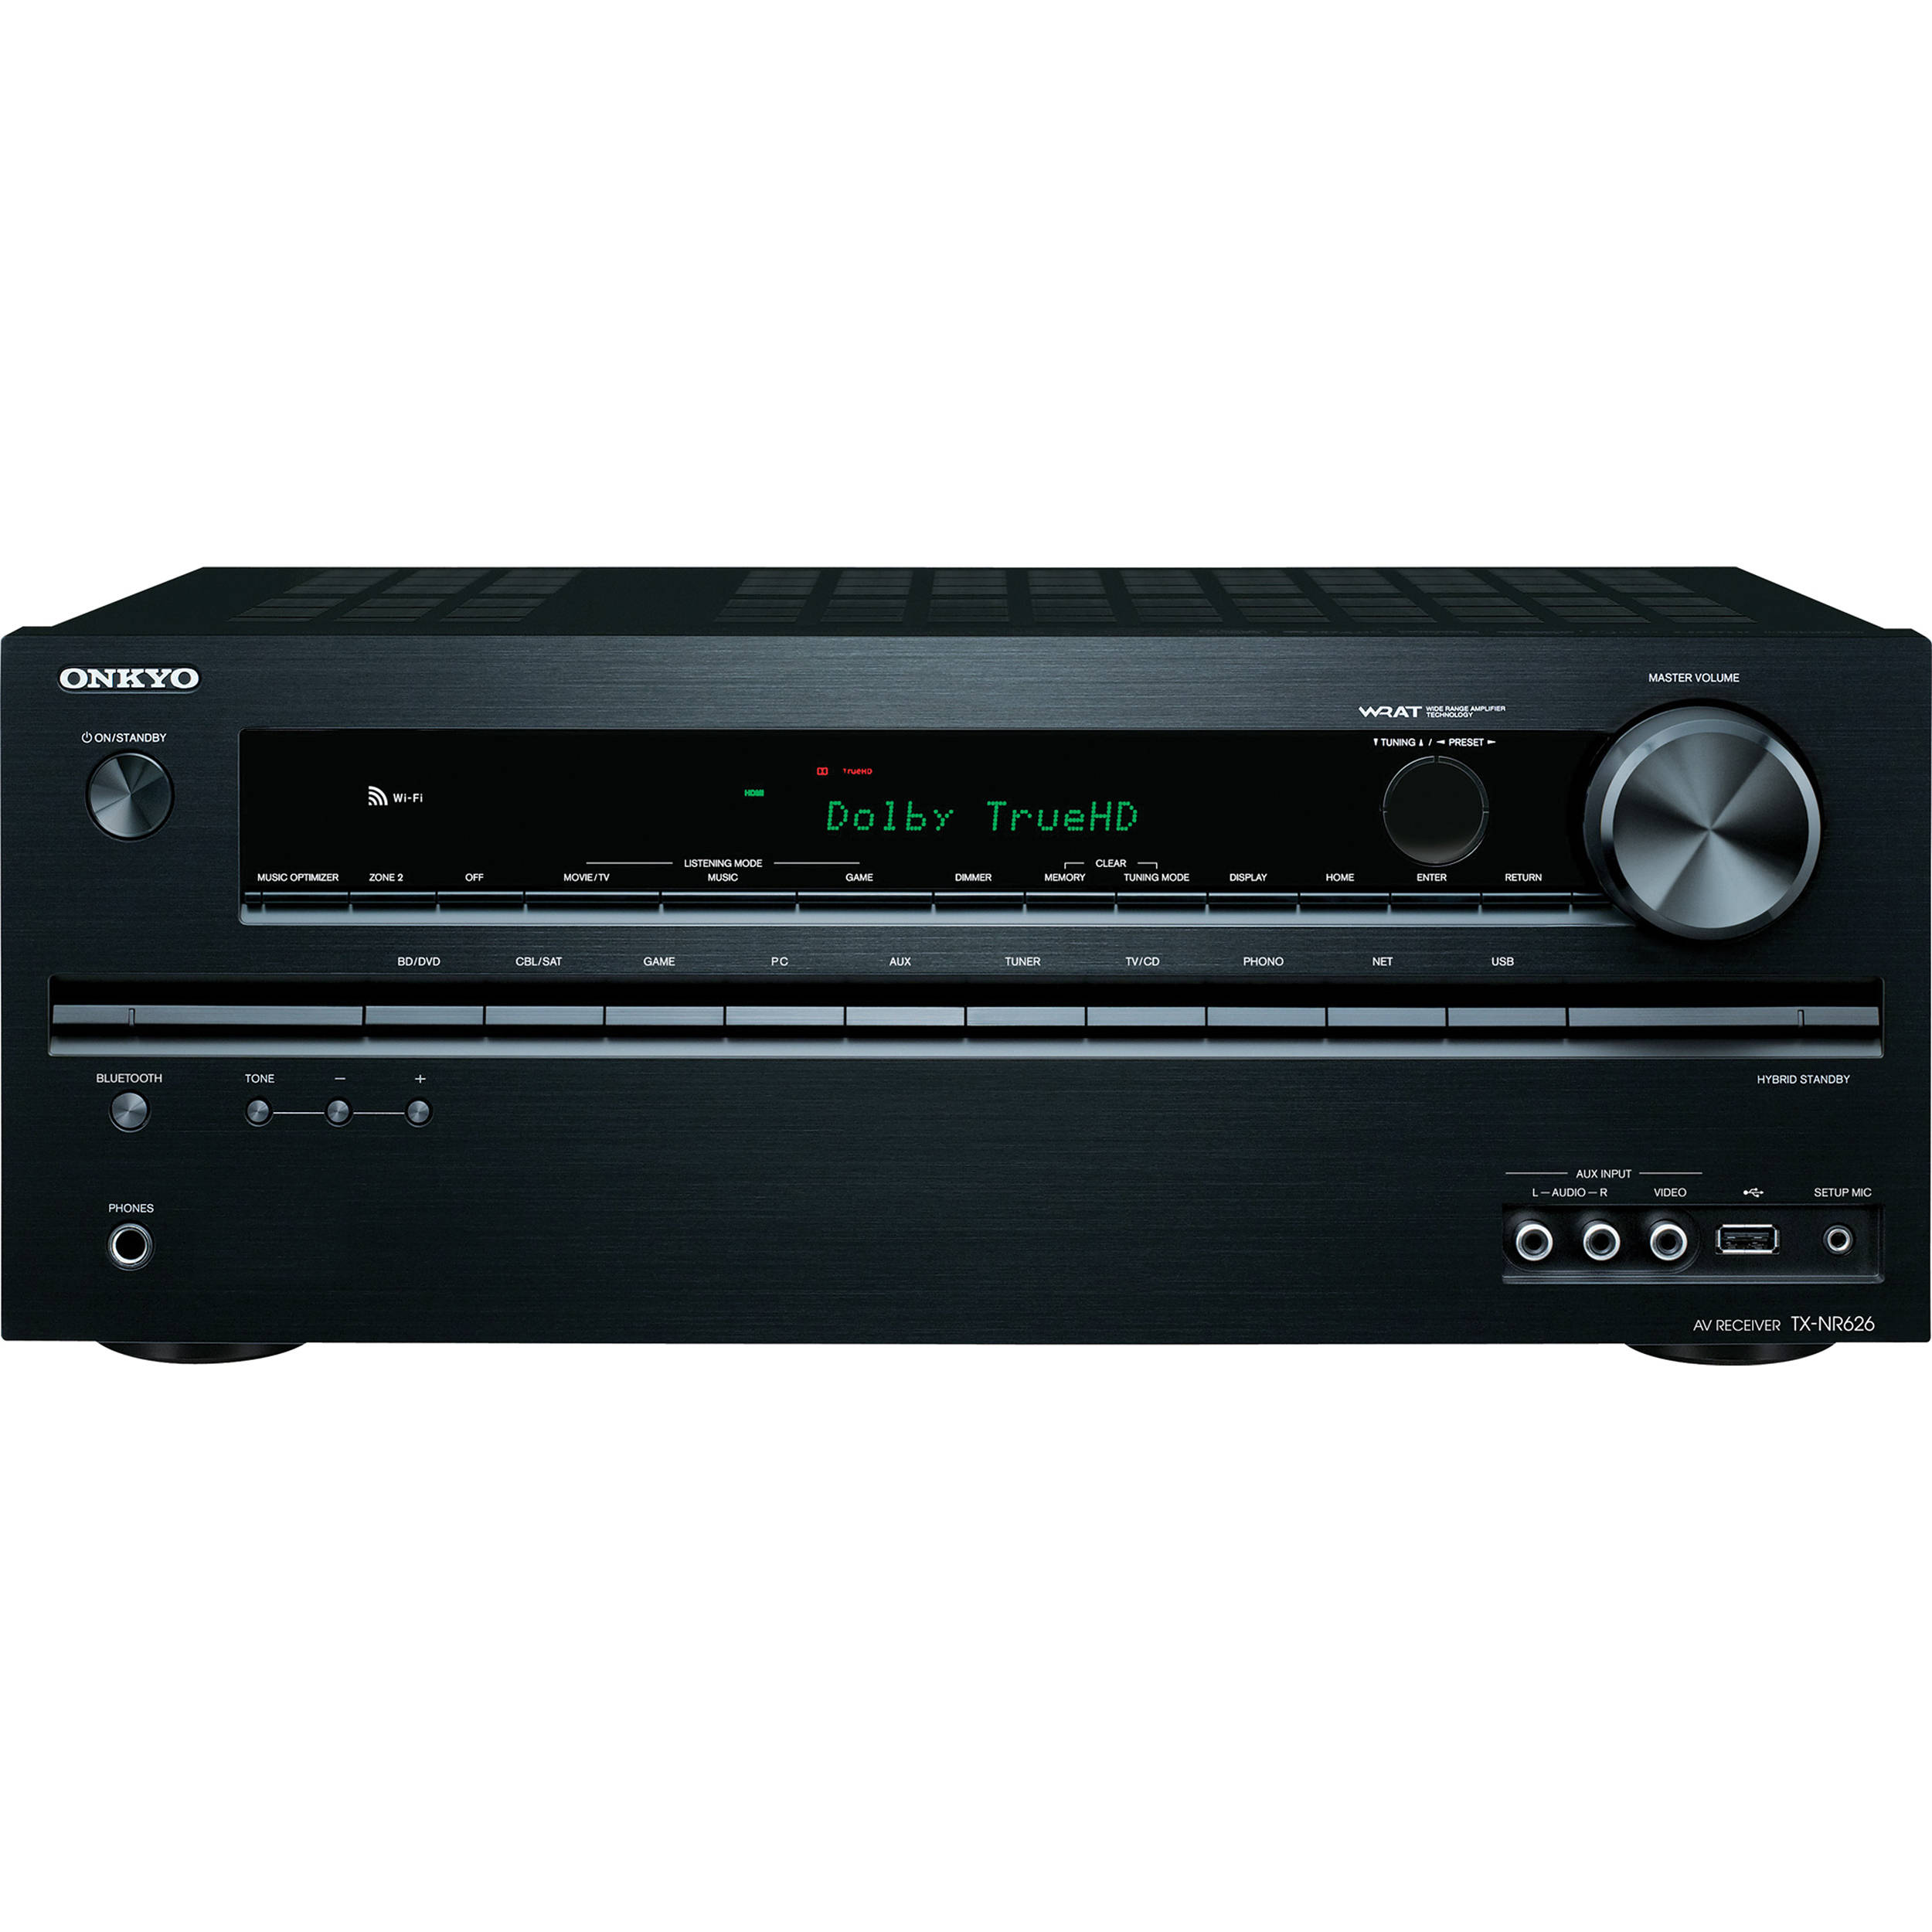 Onkyo TX-NR626 Network A/V Receiver Drivers Windows XP